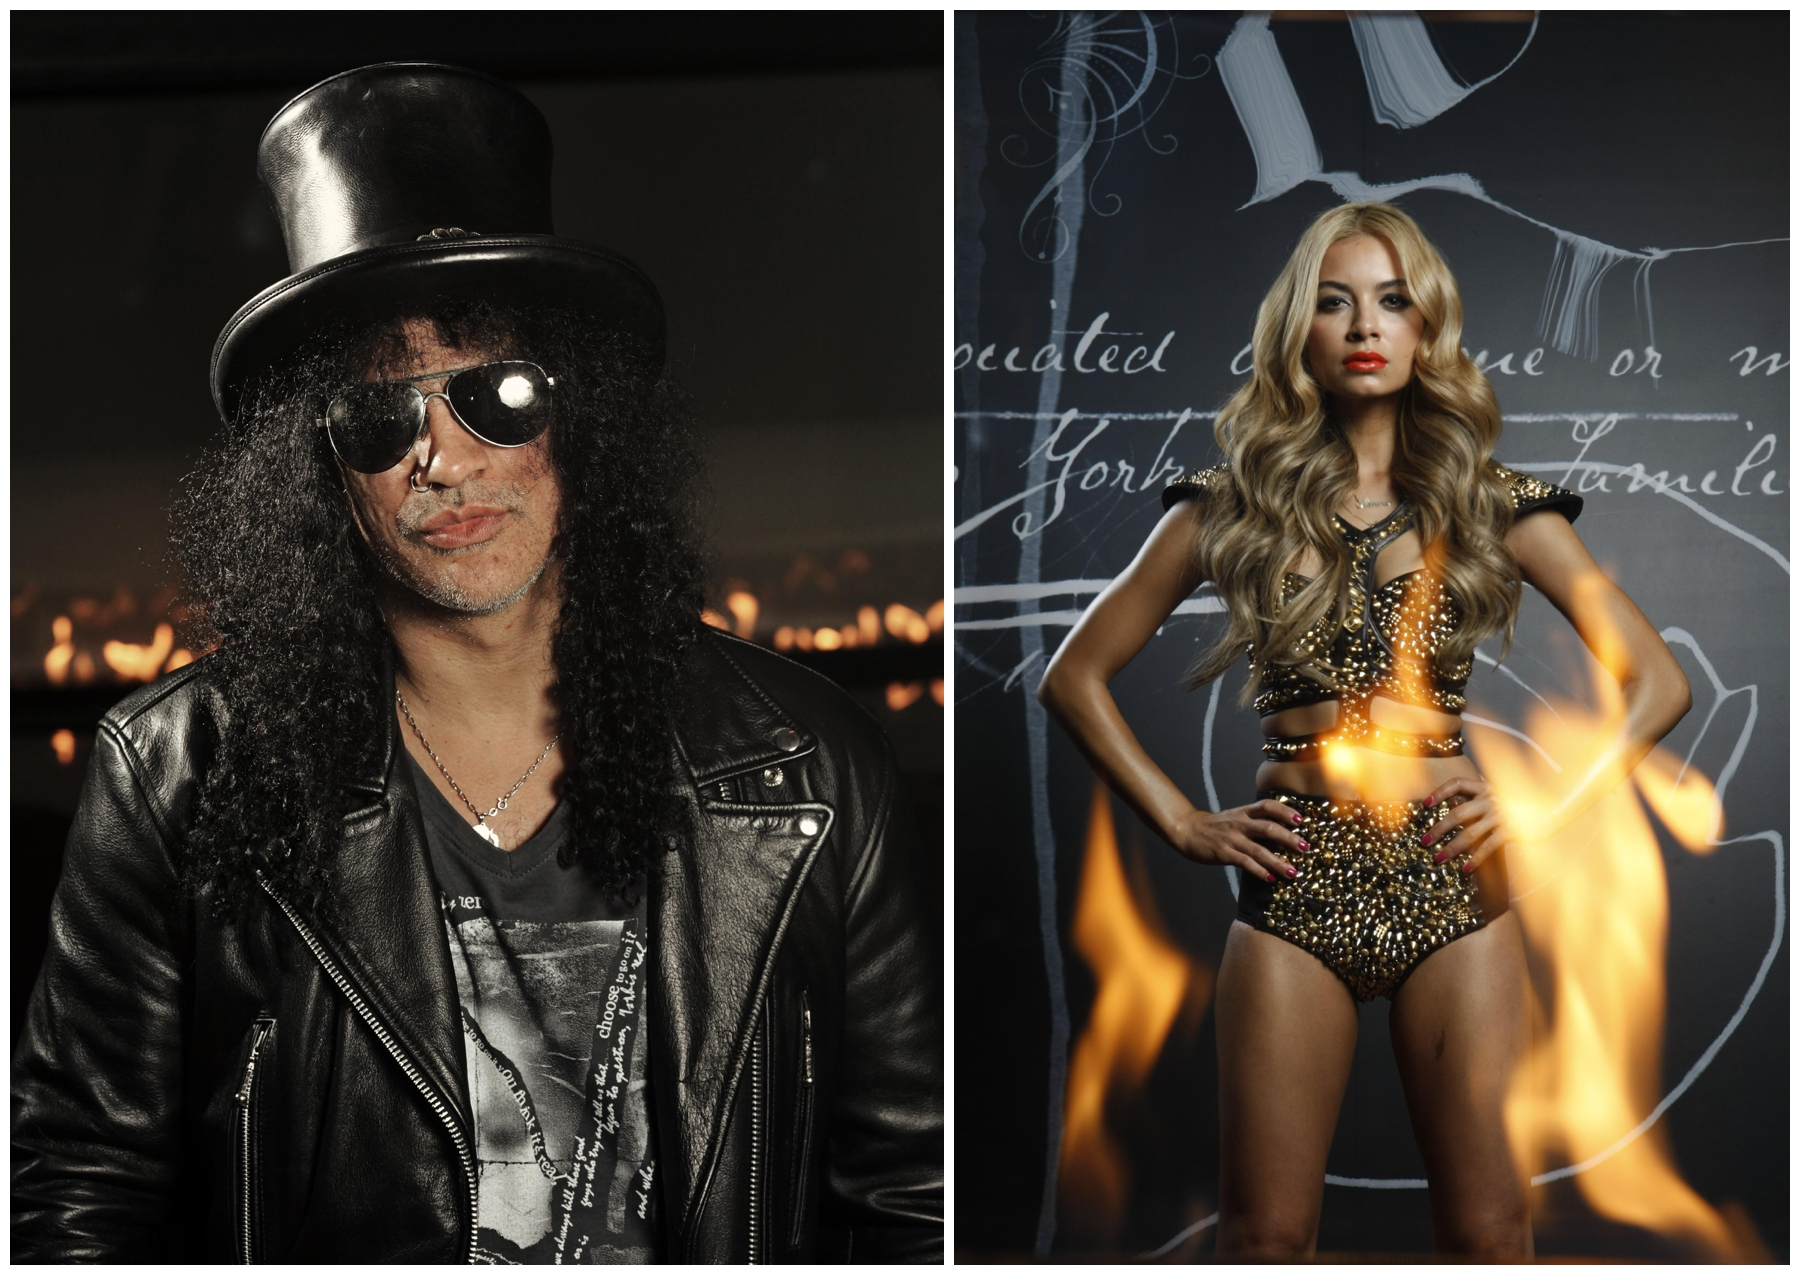 11/08/2010 FEATURES: Former Guns N Roses guitarist Slash in Melbourne.